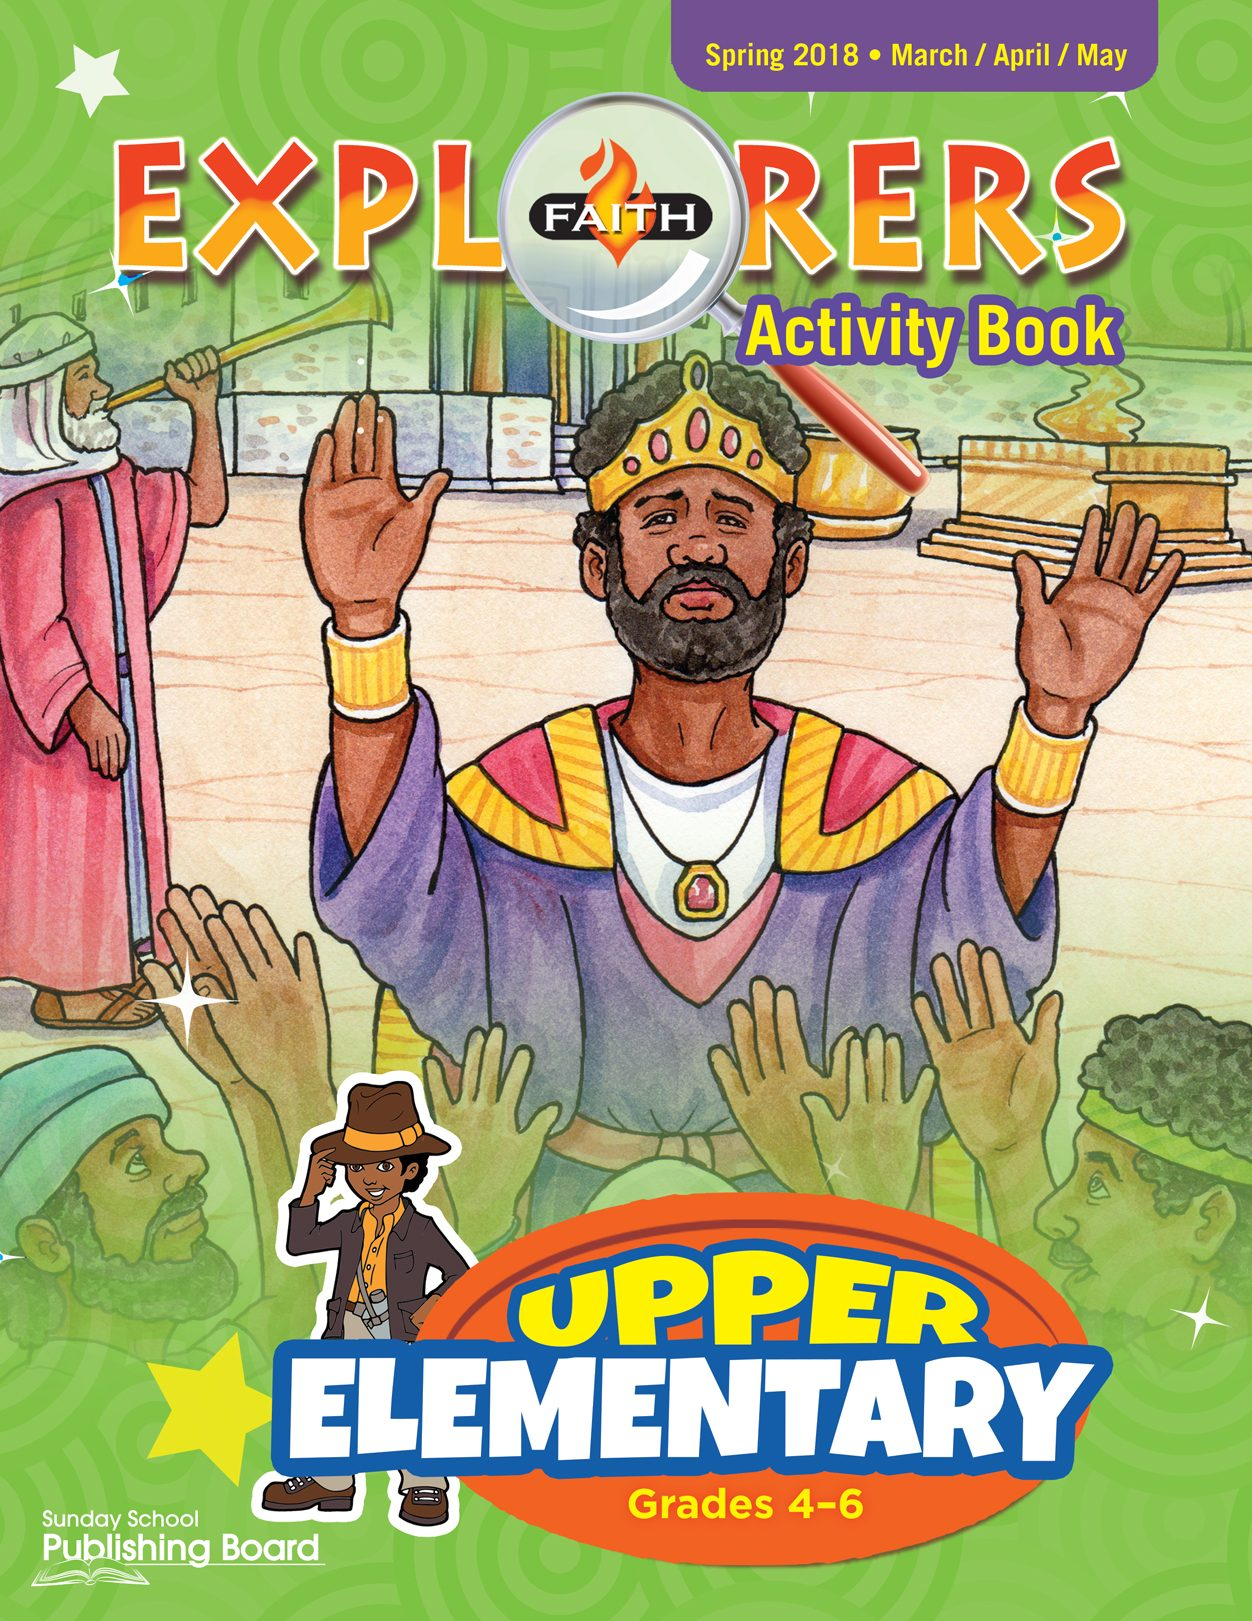 Faith Explorers Activity Book, Upper Elementary for Grades 4-6 (Spring 2018)-Digital Edition